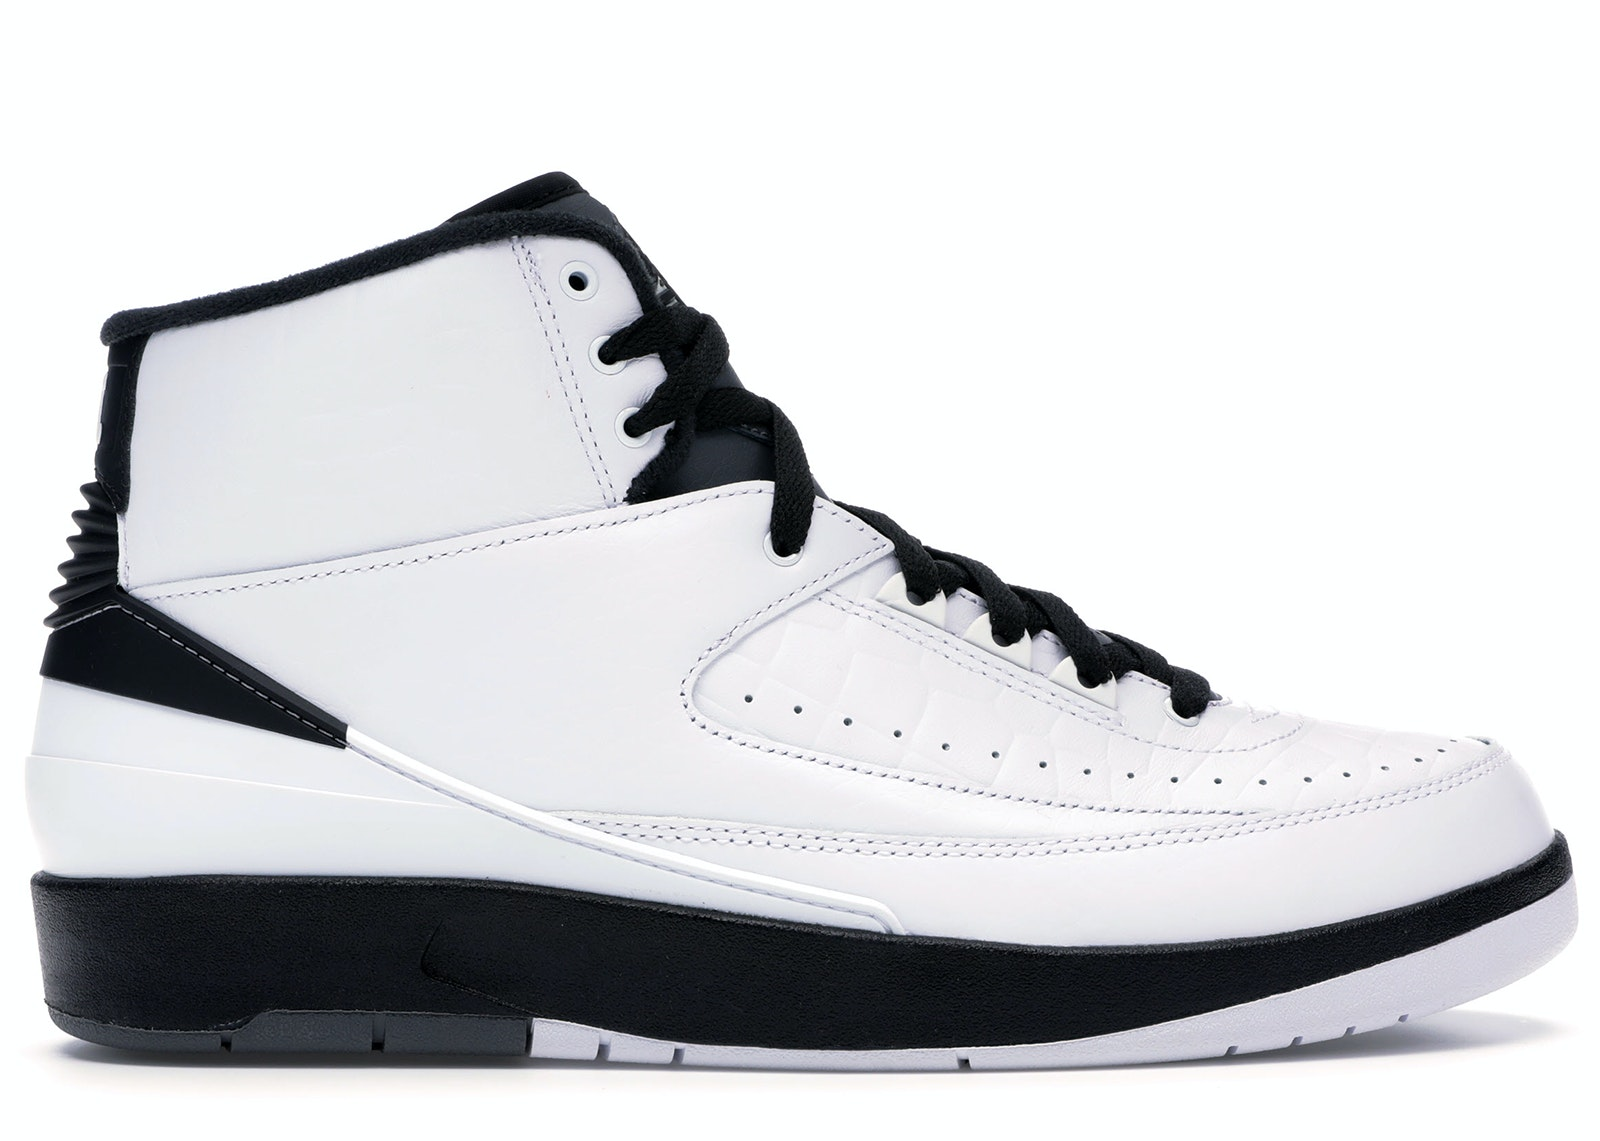 Buy Air Jordan 2 Shoes & Deadstock Sneakers